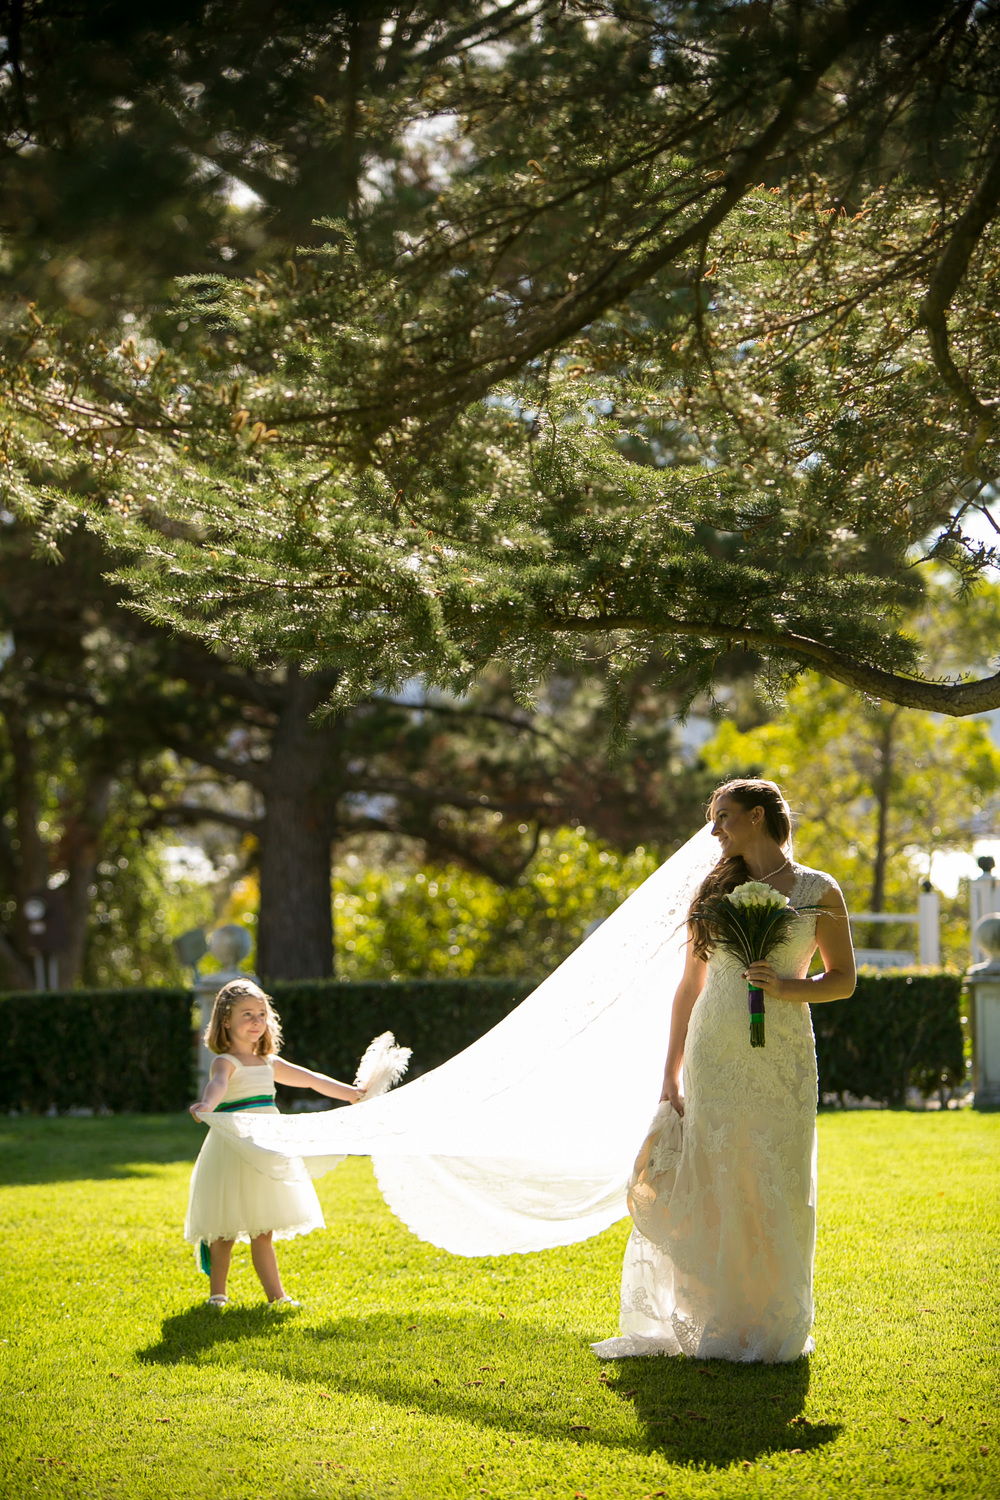 00051_20141101133842_San_Francisco_Wedding_Photographer_Sees_The_Day.jpg